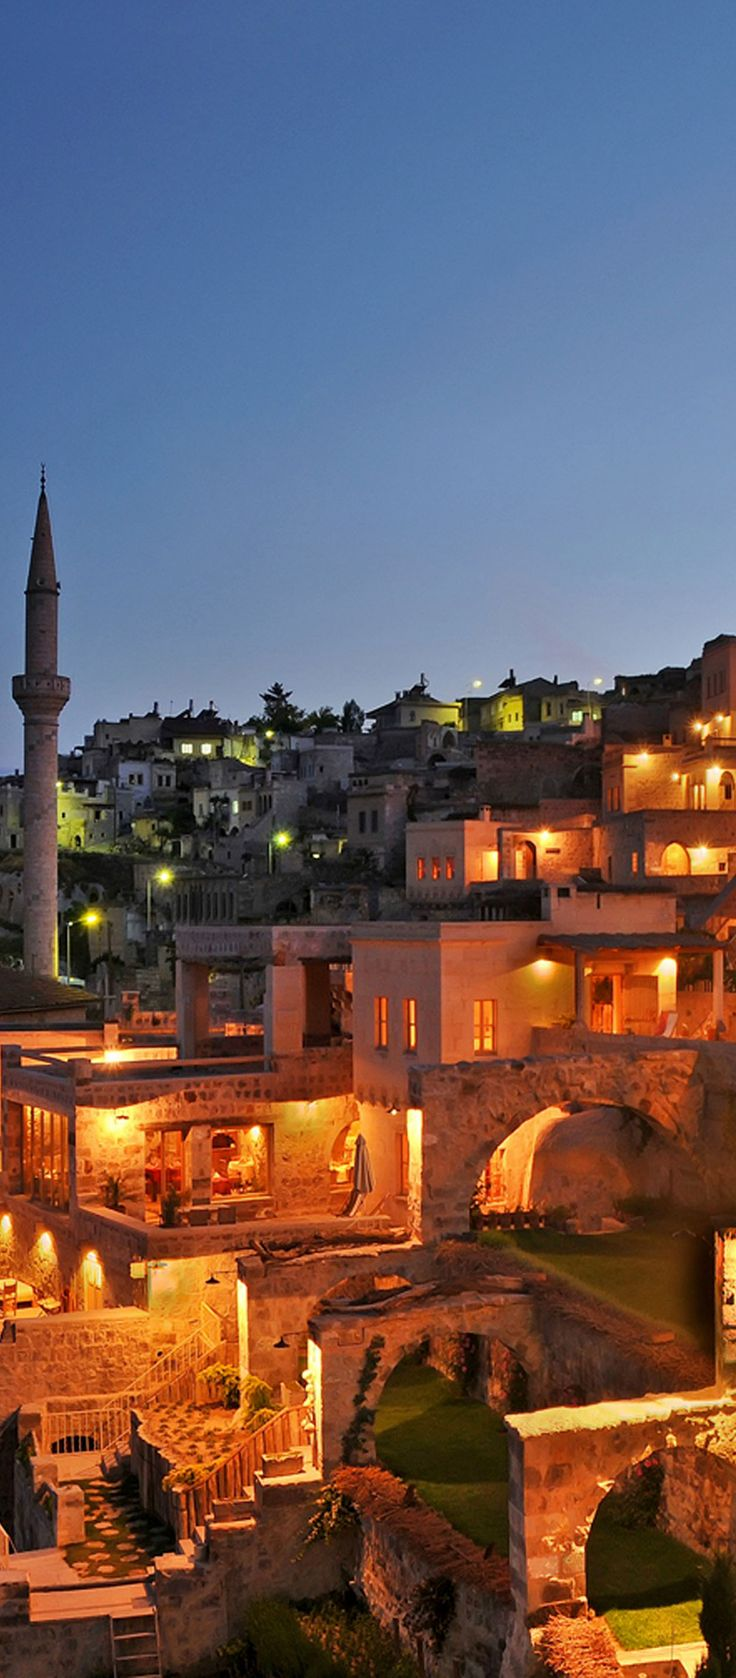 Romantic night lights of Turkey  #Turkey #Holiday #View